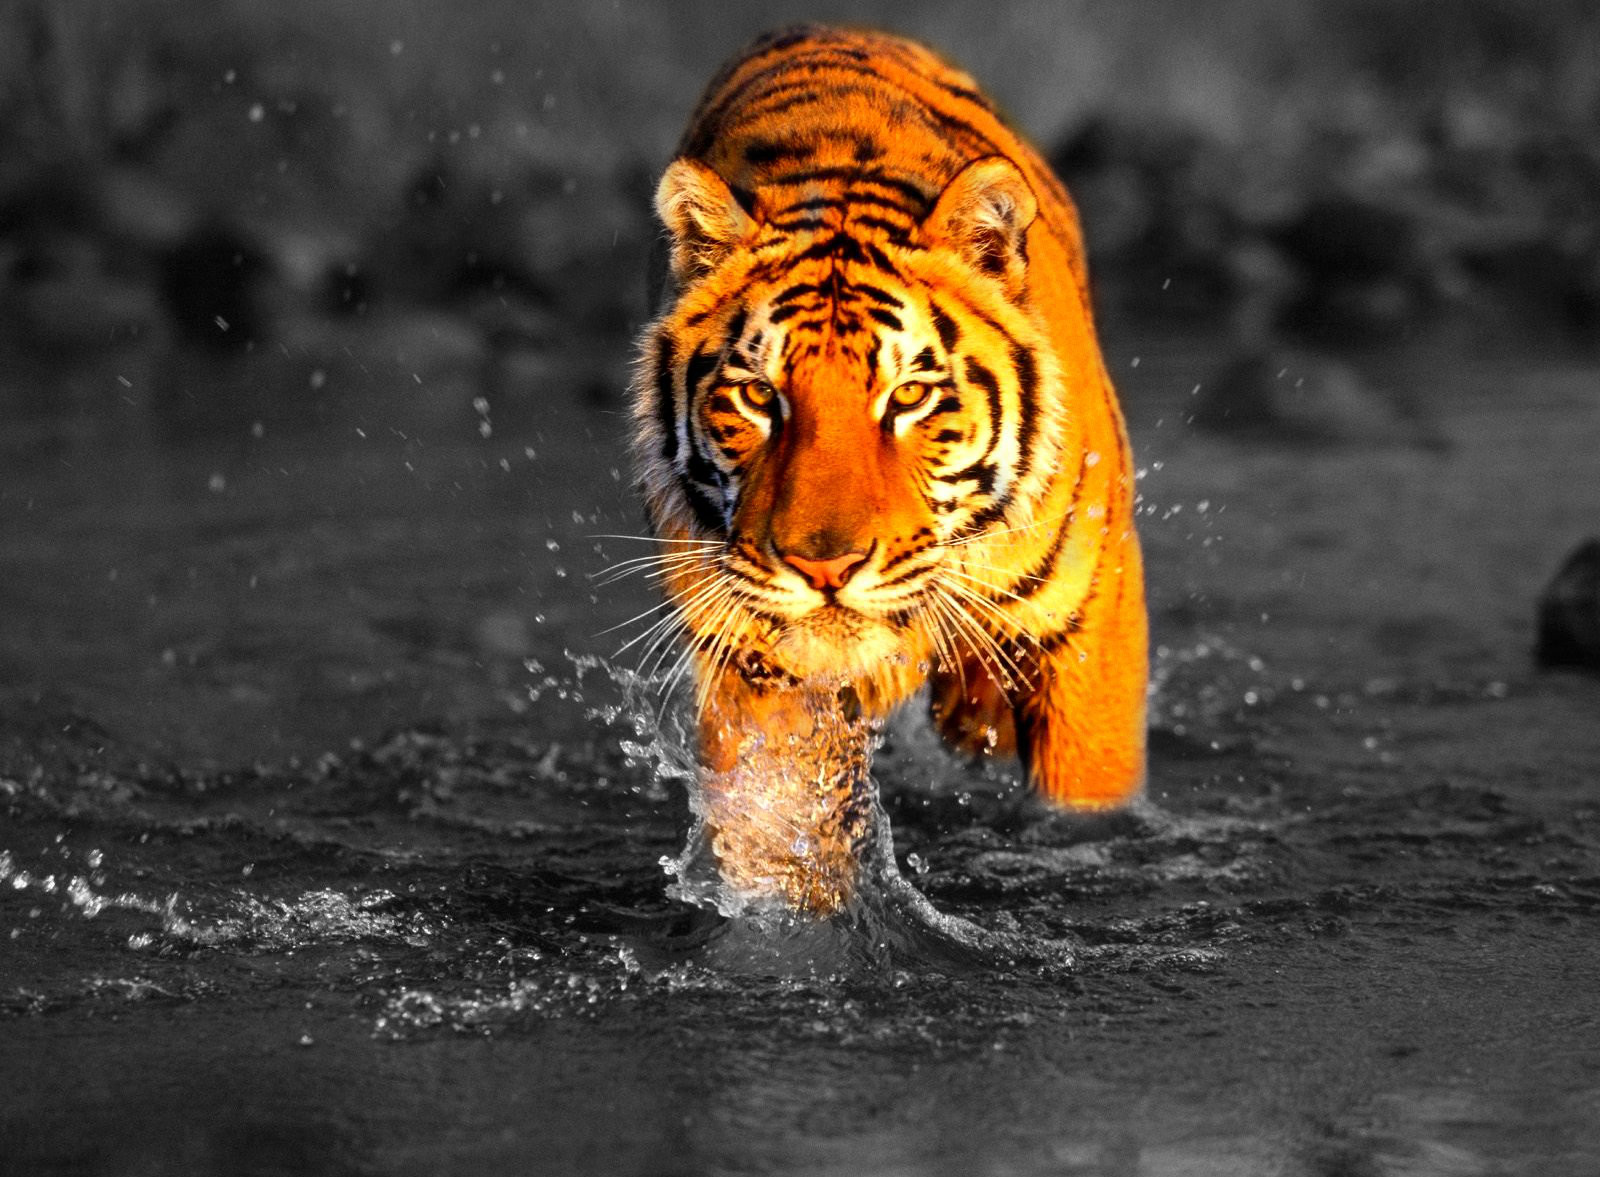 Wild Tiger Fighting Black And White Photography With Color